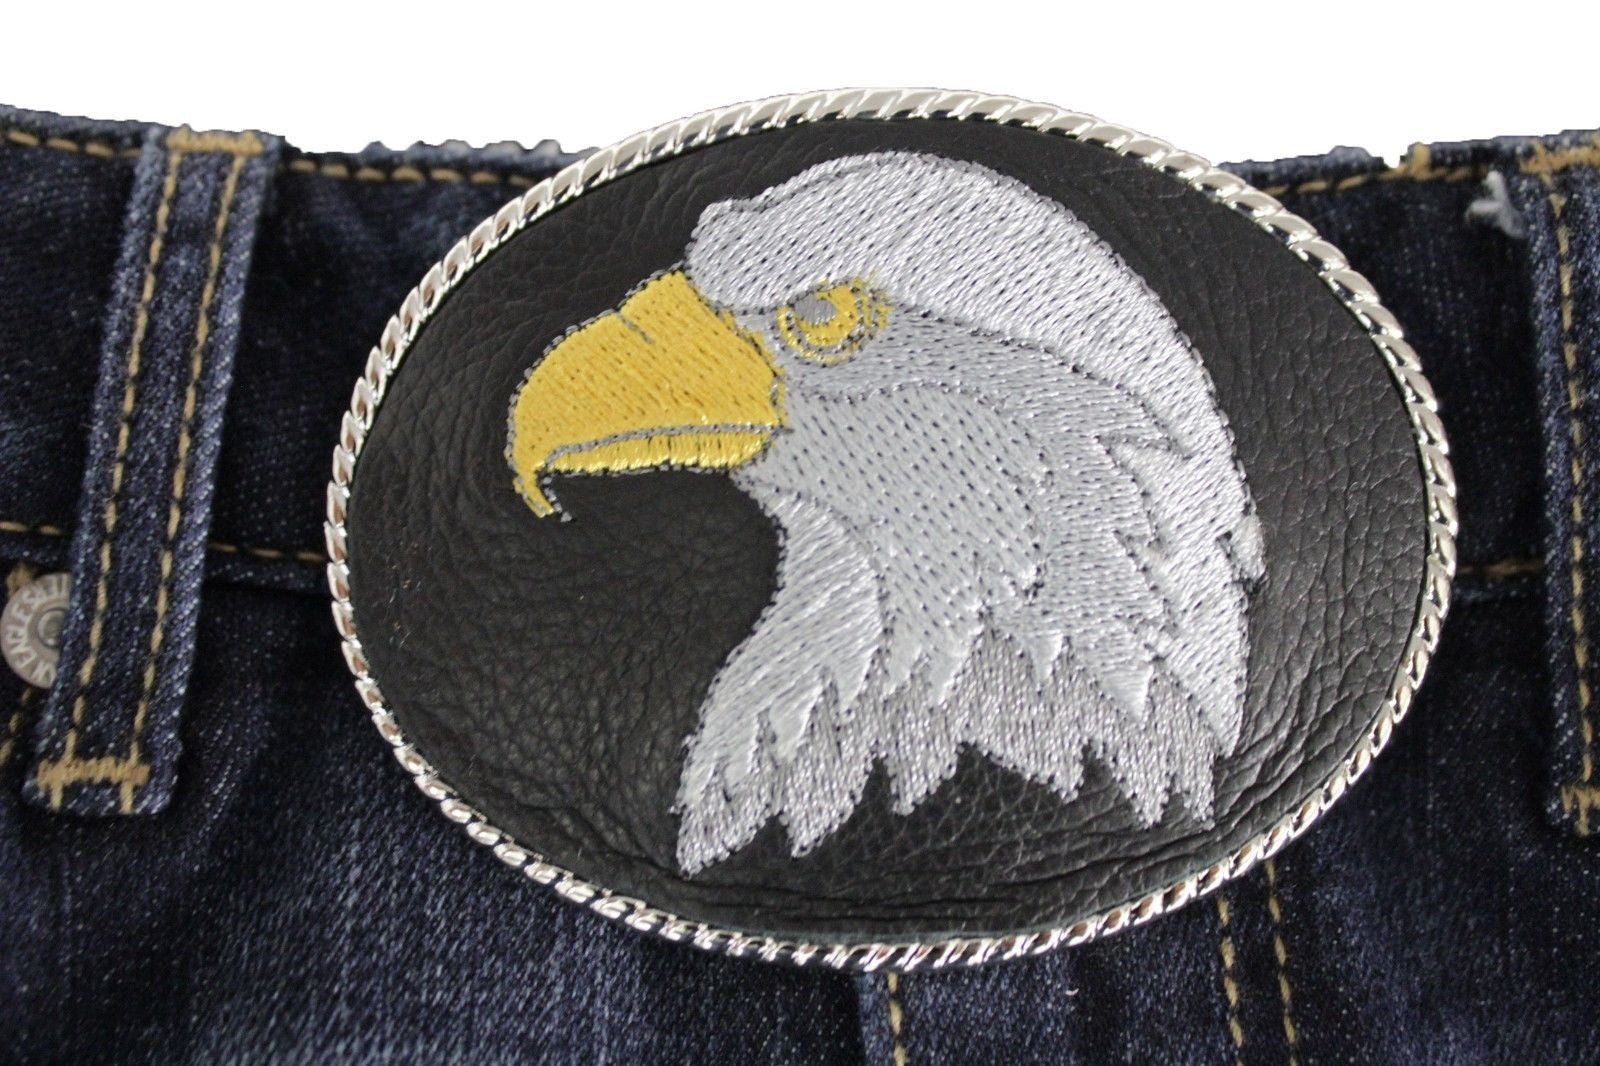 LARGE WESTERN EAGLE HEAD BELT BUCKLE METAL GREY 3D HIGH DETAIL AMERICAN